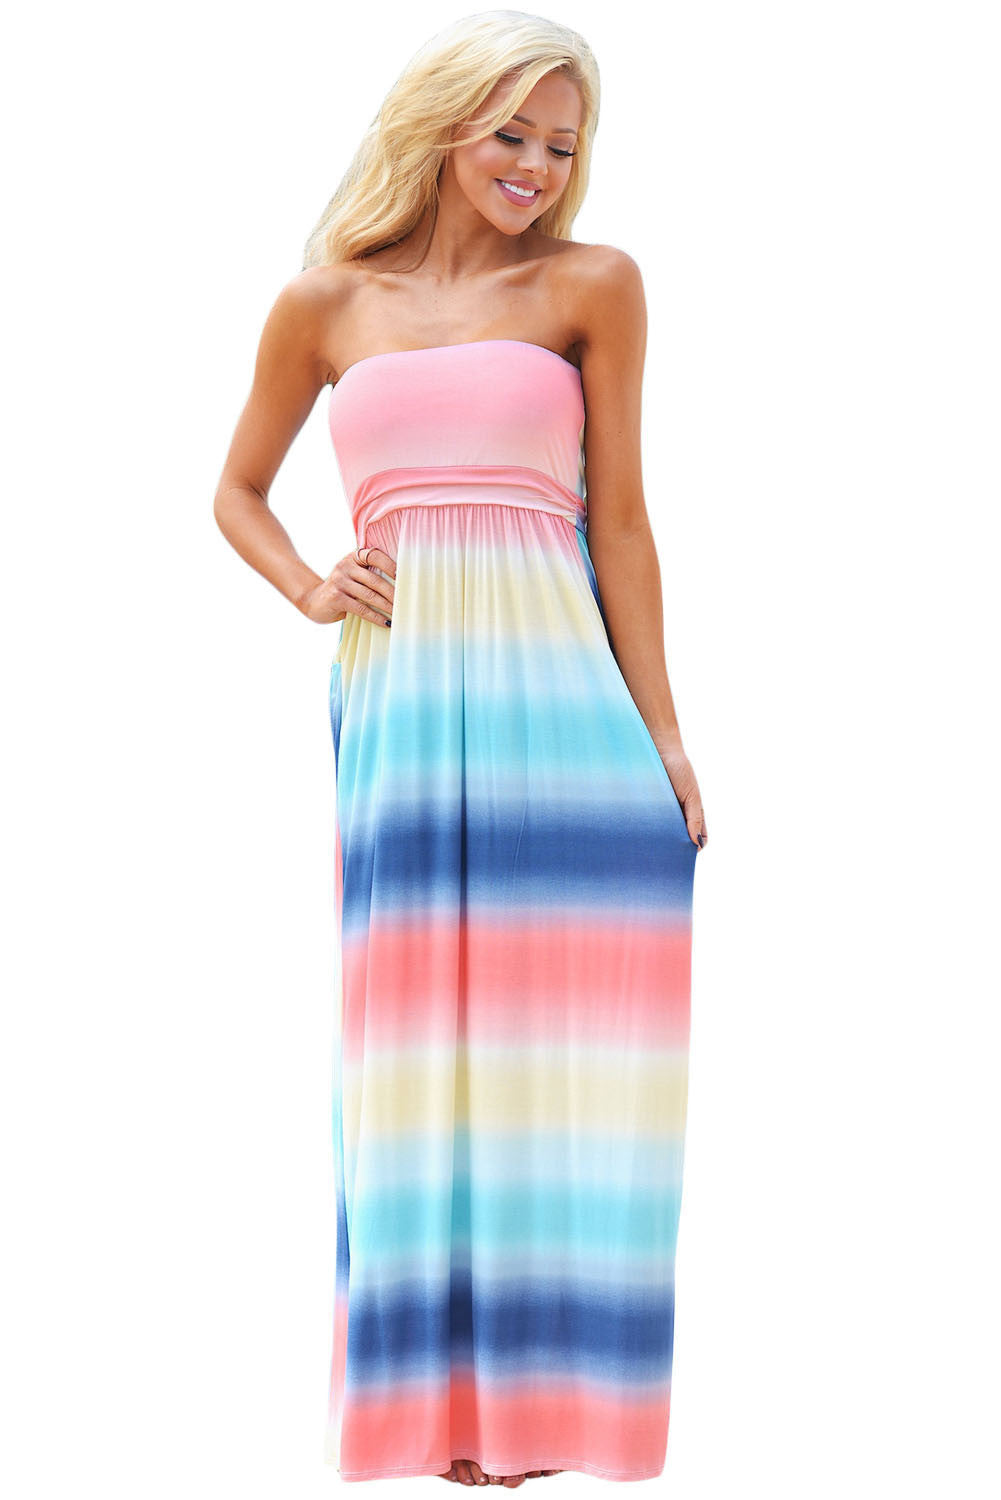 Her Fashion Baby Blues Multi Print Strapless Lovely Maxi Boho Dress